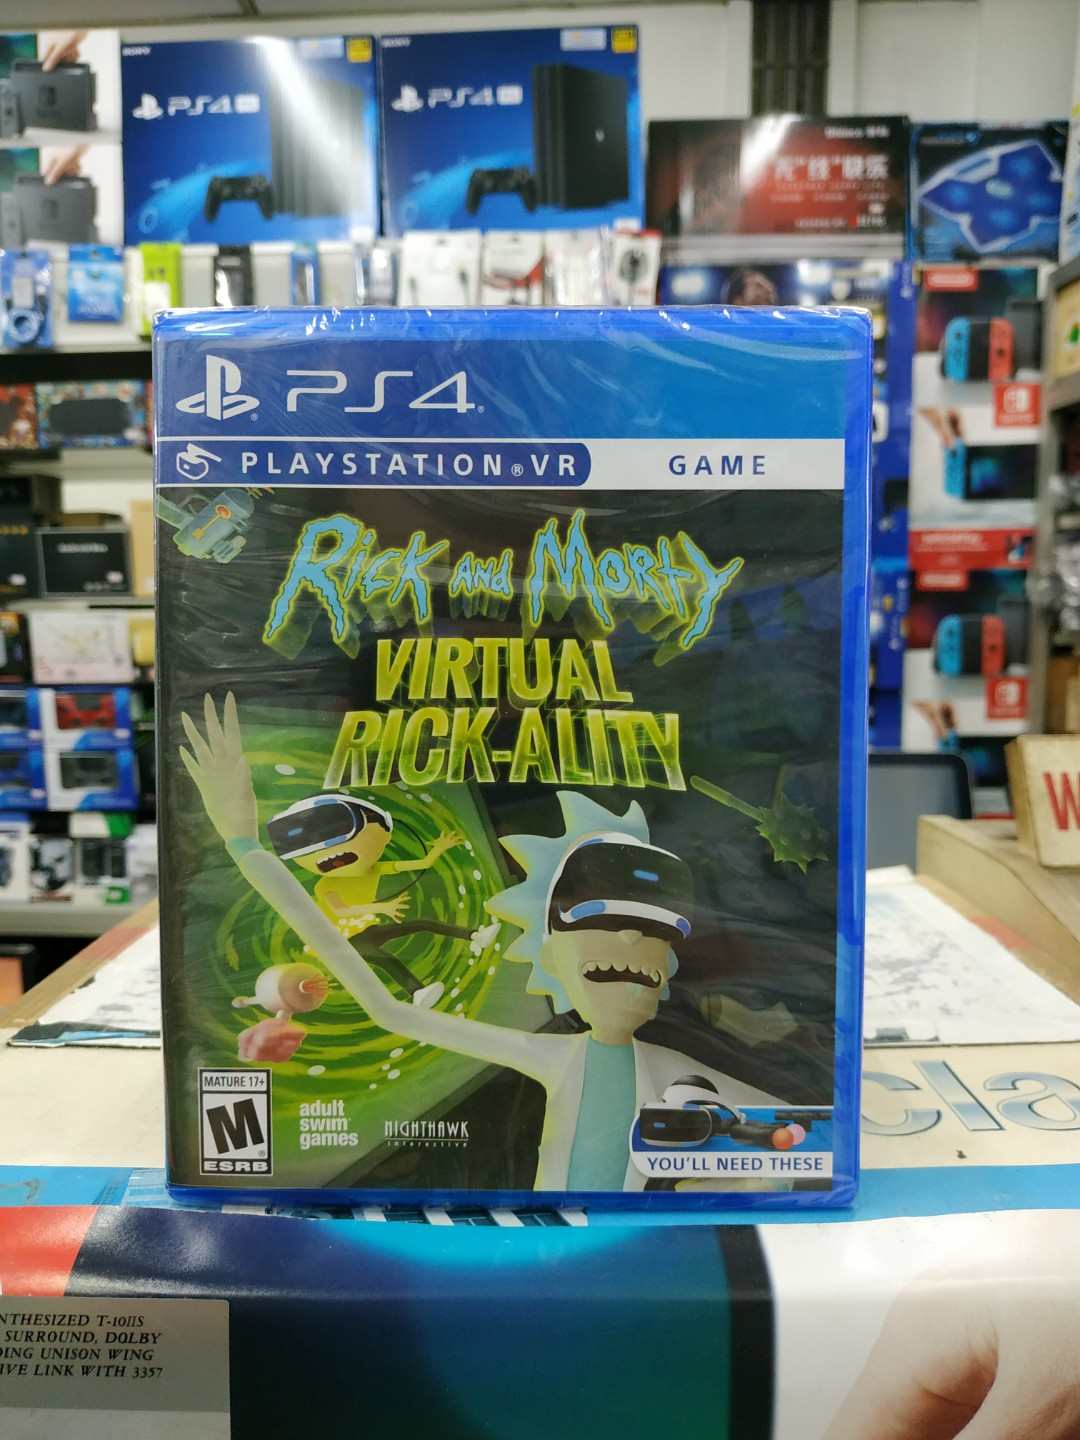 Ps4 Vr Rick And Morty Virtual Ality Toys Games Video Gaming Bravo Team Aim Controller Region 3 English On Carousell